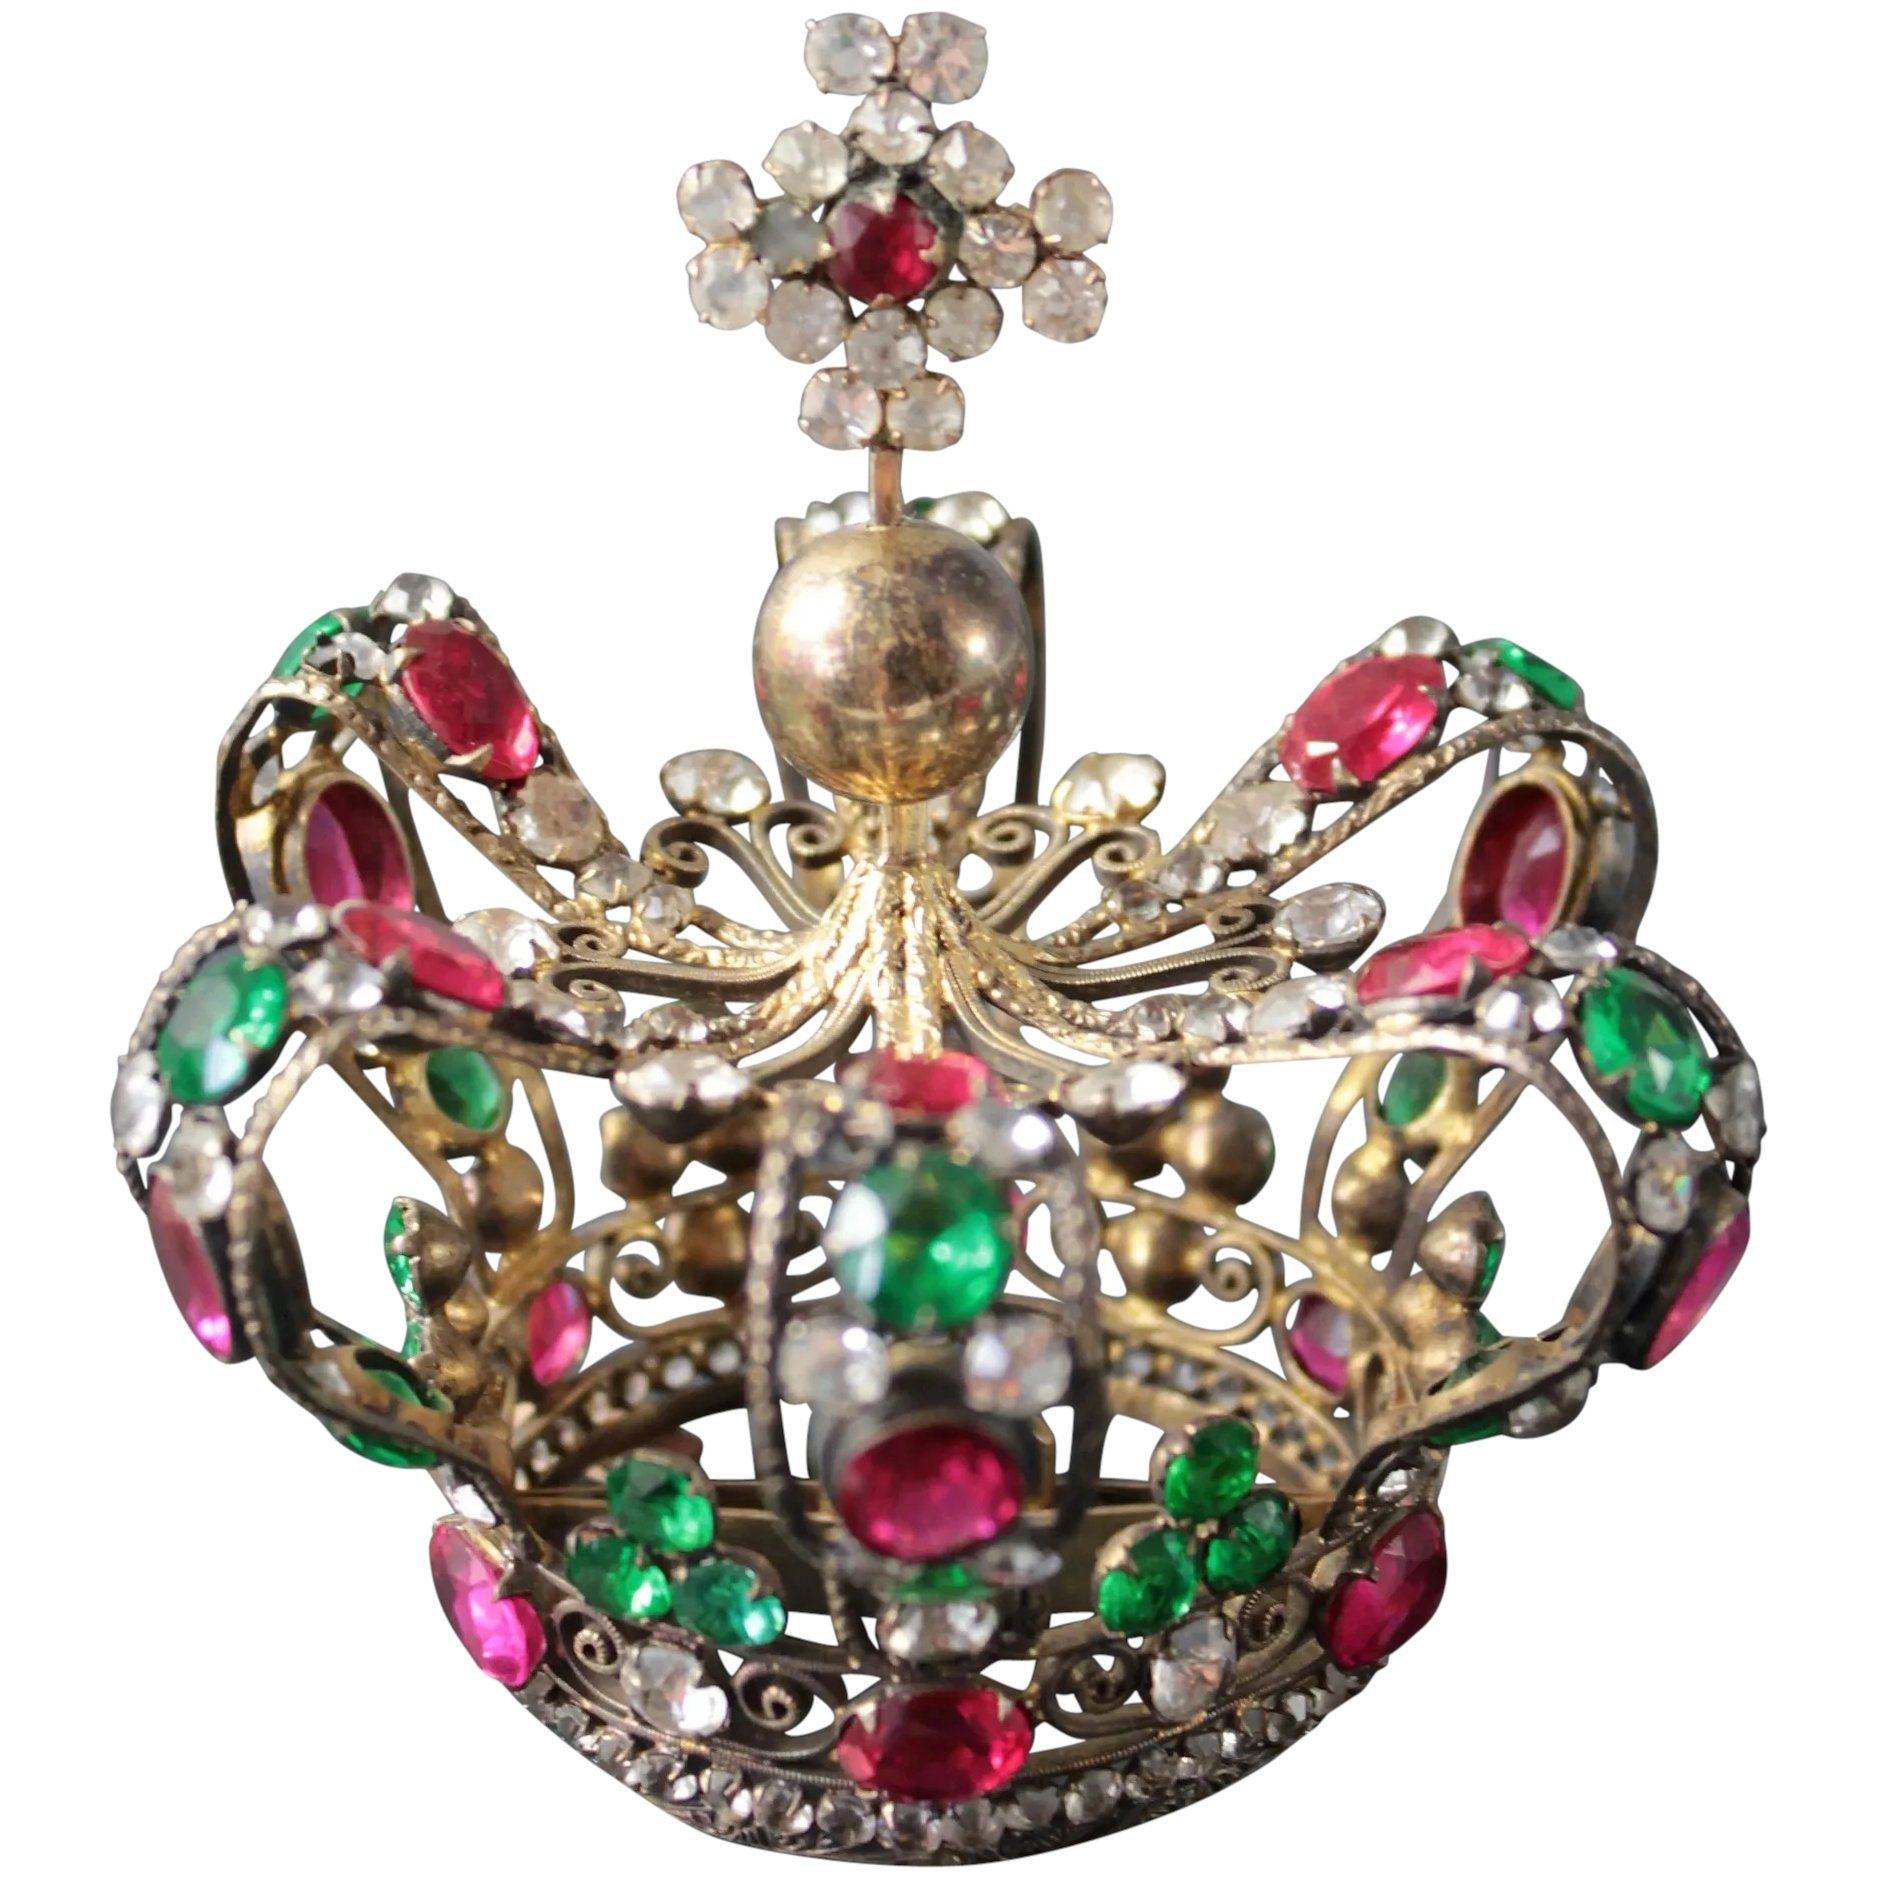 Fabulous French Antique Bejeweled Religious Santos Madonna Crown Tiara diadem, circa 1850